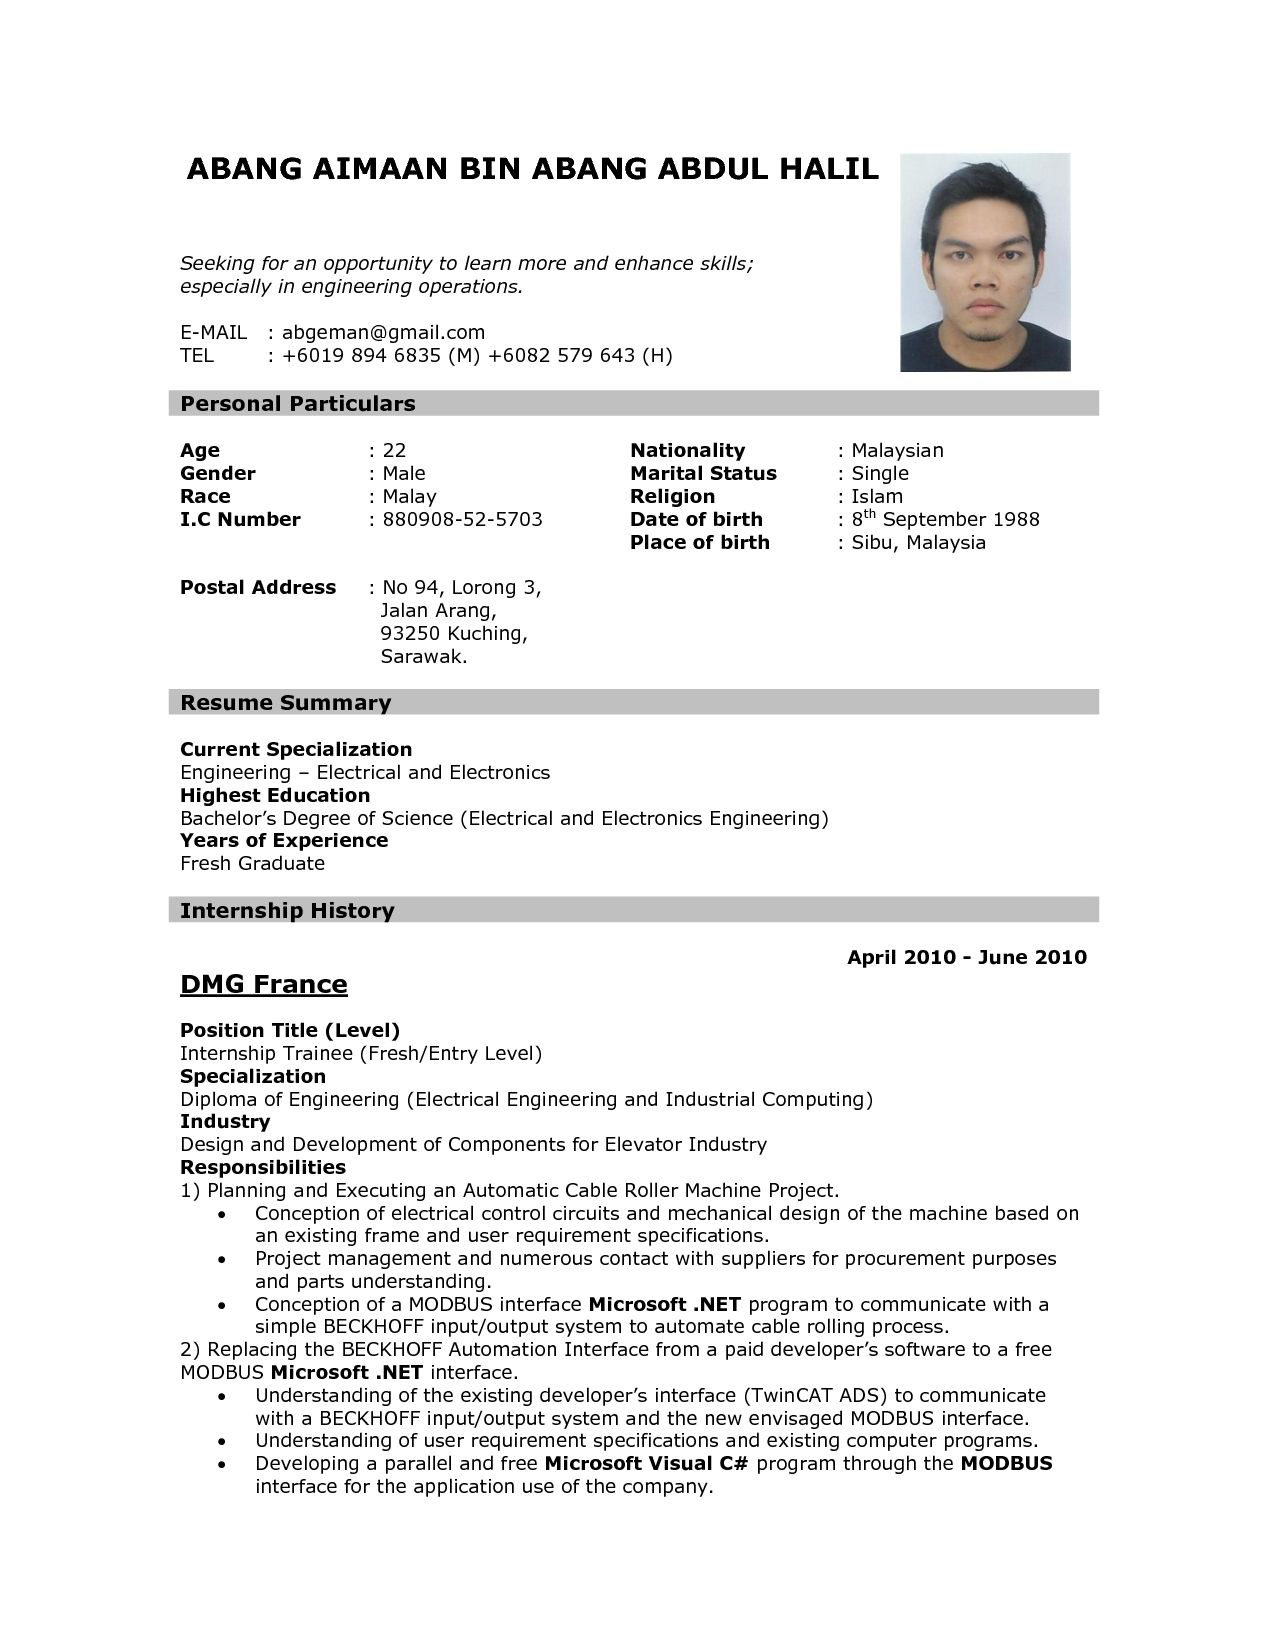 nice sample resume for applying job Home Design Idea